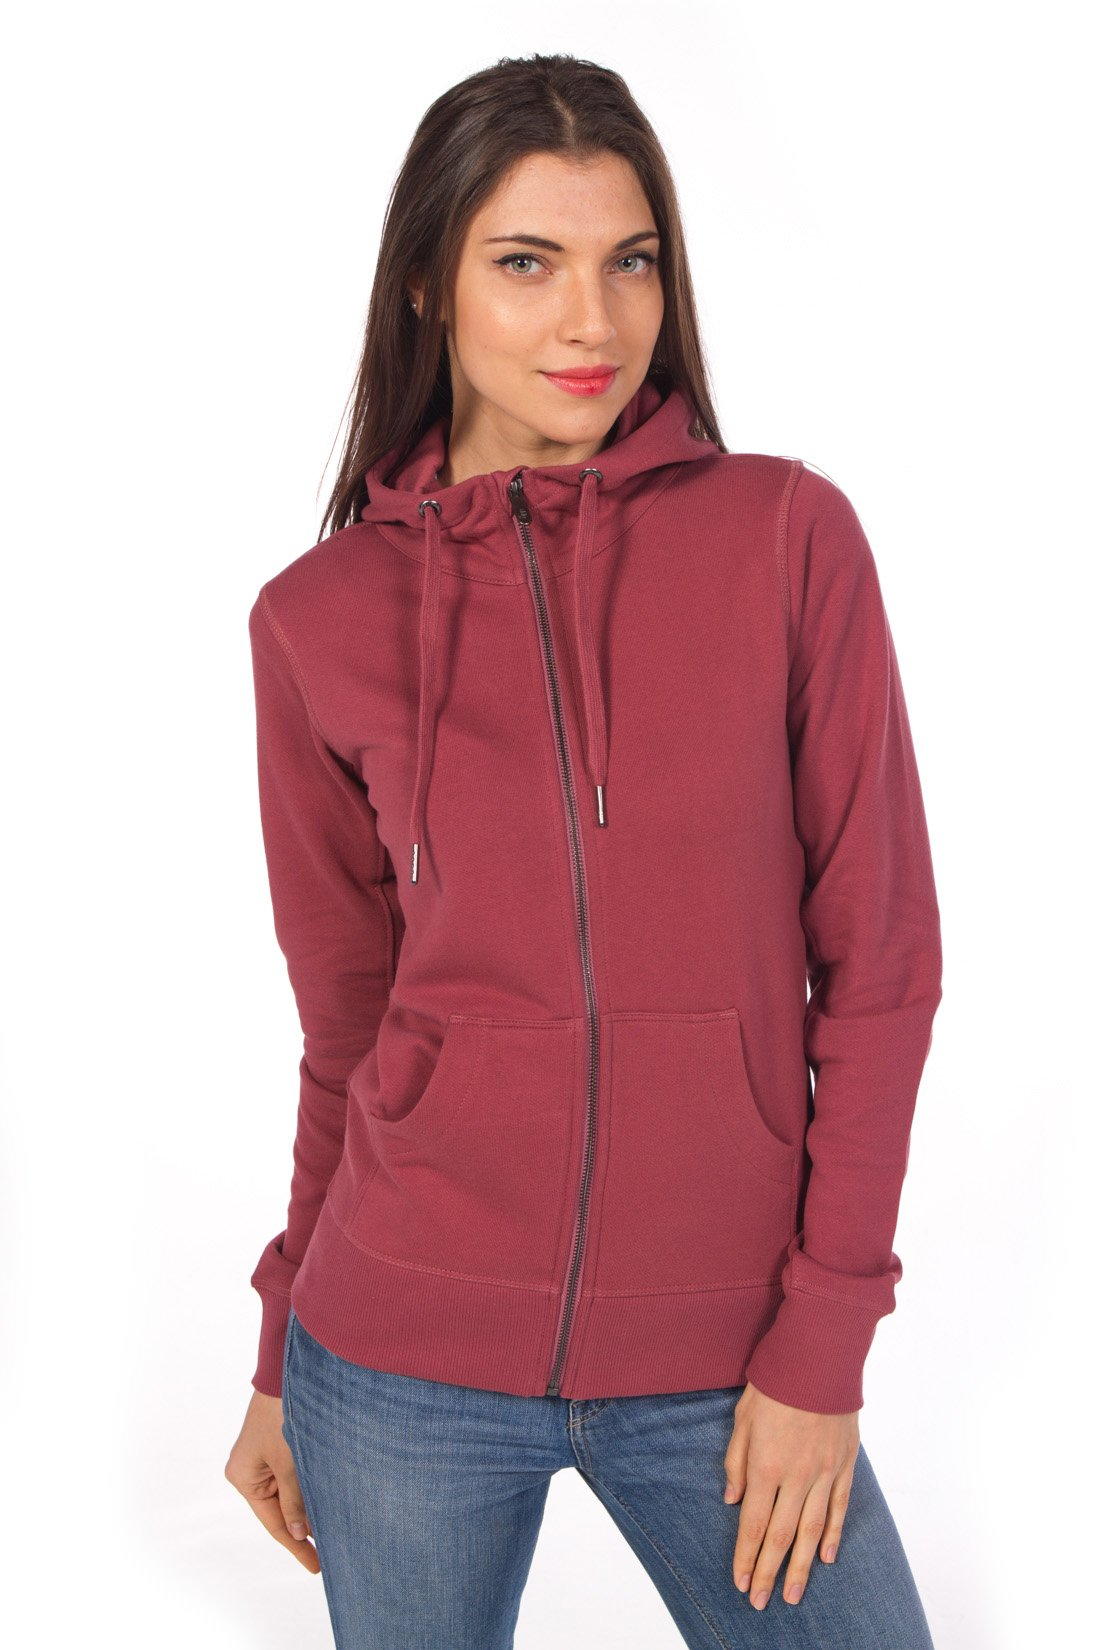 Ably Apparel Hannah (Medium, Plum)